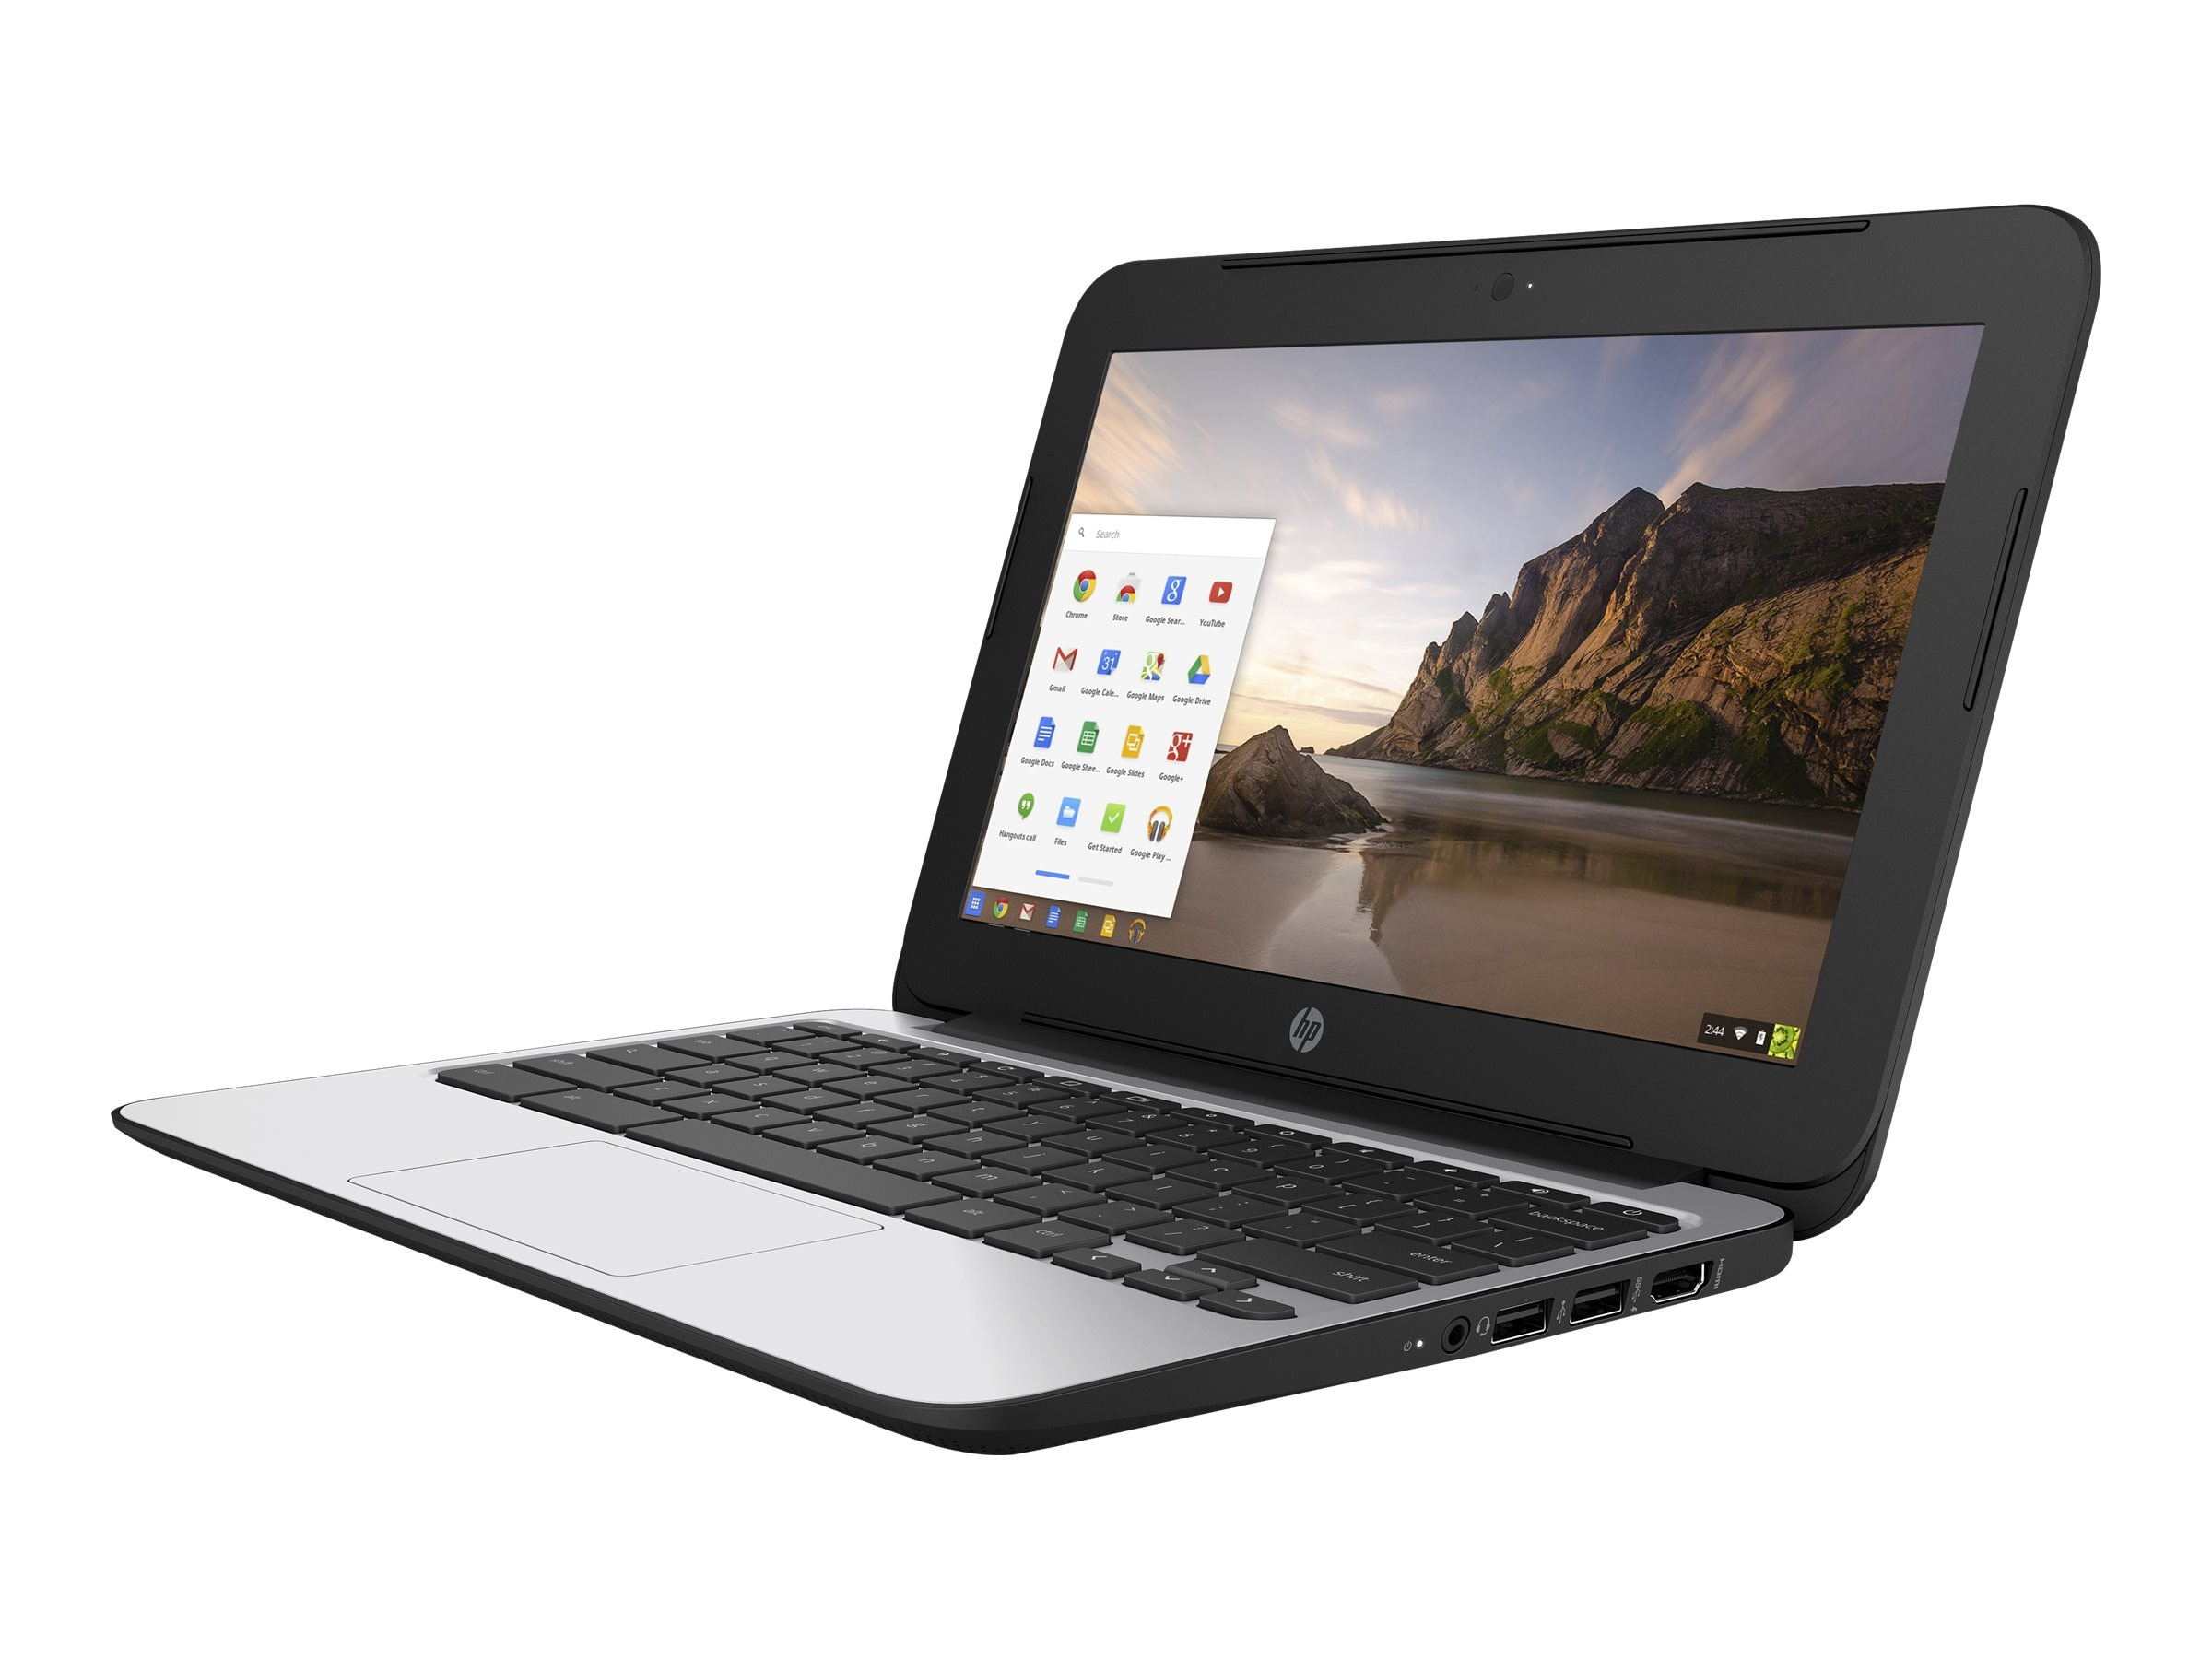 HP Smart Buy Chromebook 11 G4 2.16GHz Celeron 11.6in display, P0B78UT#ABA, 23839925, Notebooks